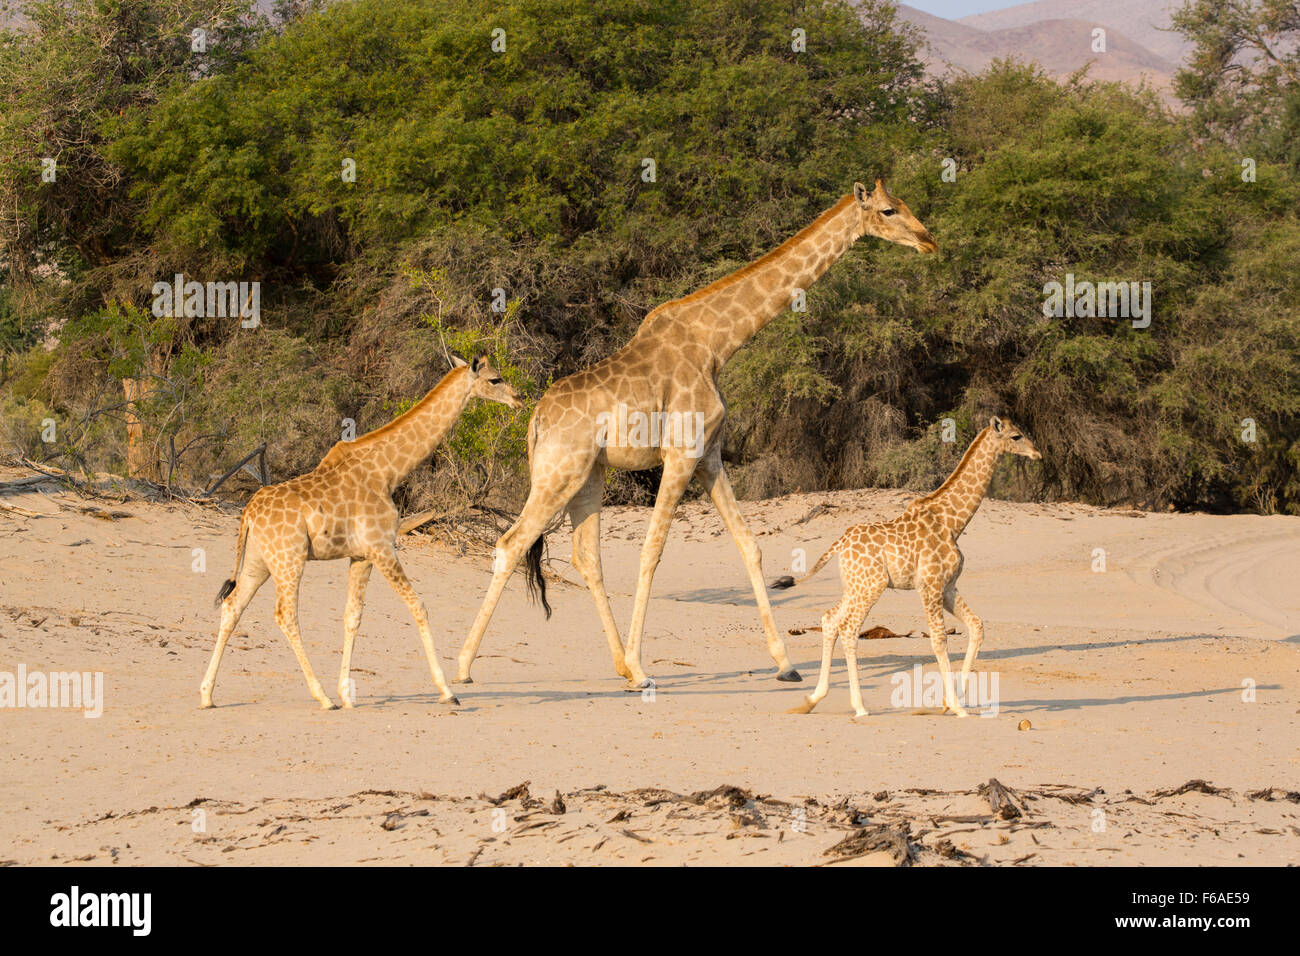 Giraffes in the Kaokoveld, Namibia, Africa - Stock Image